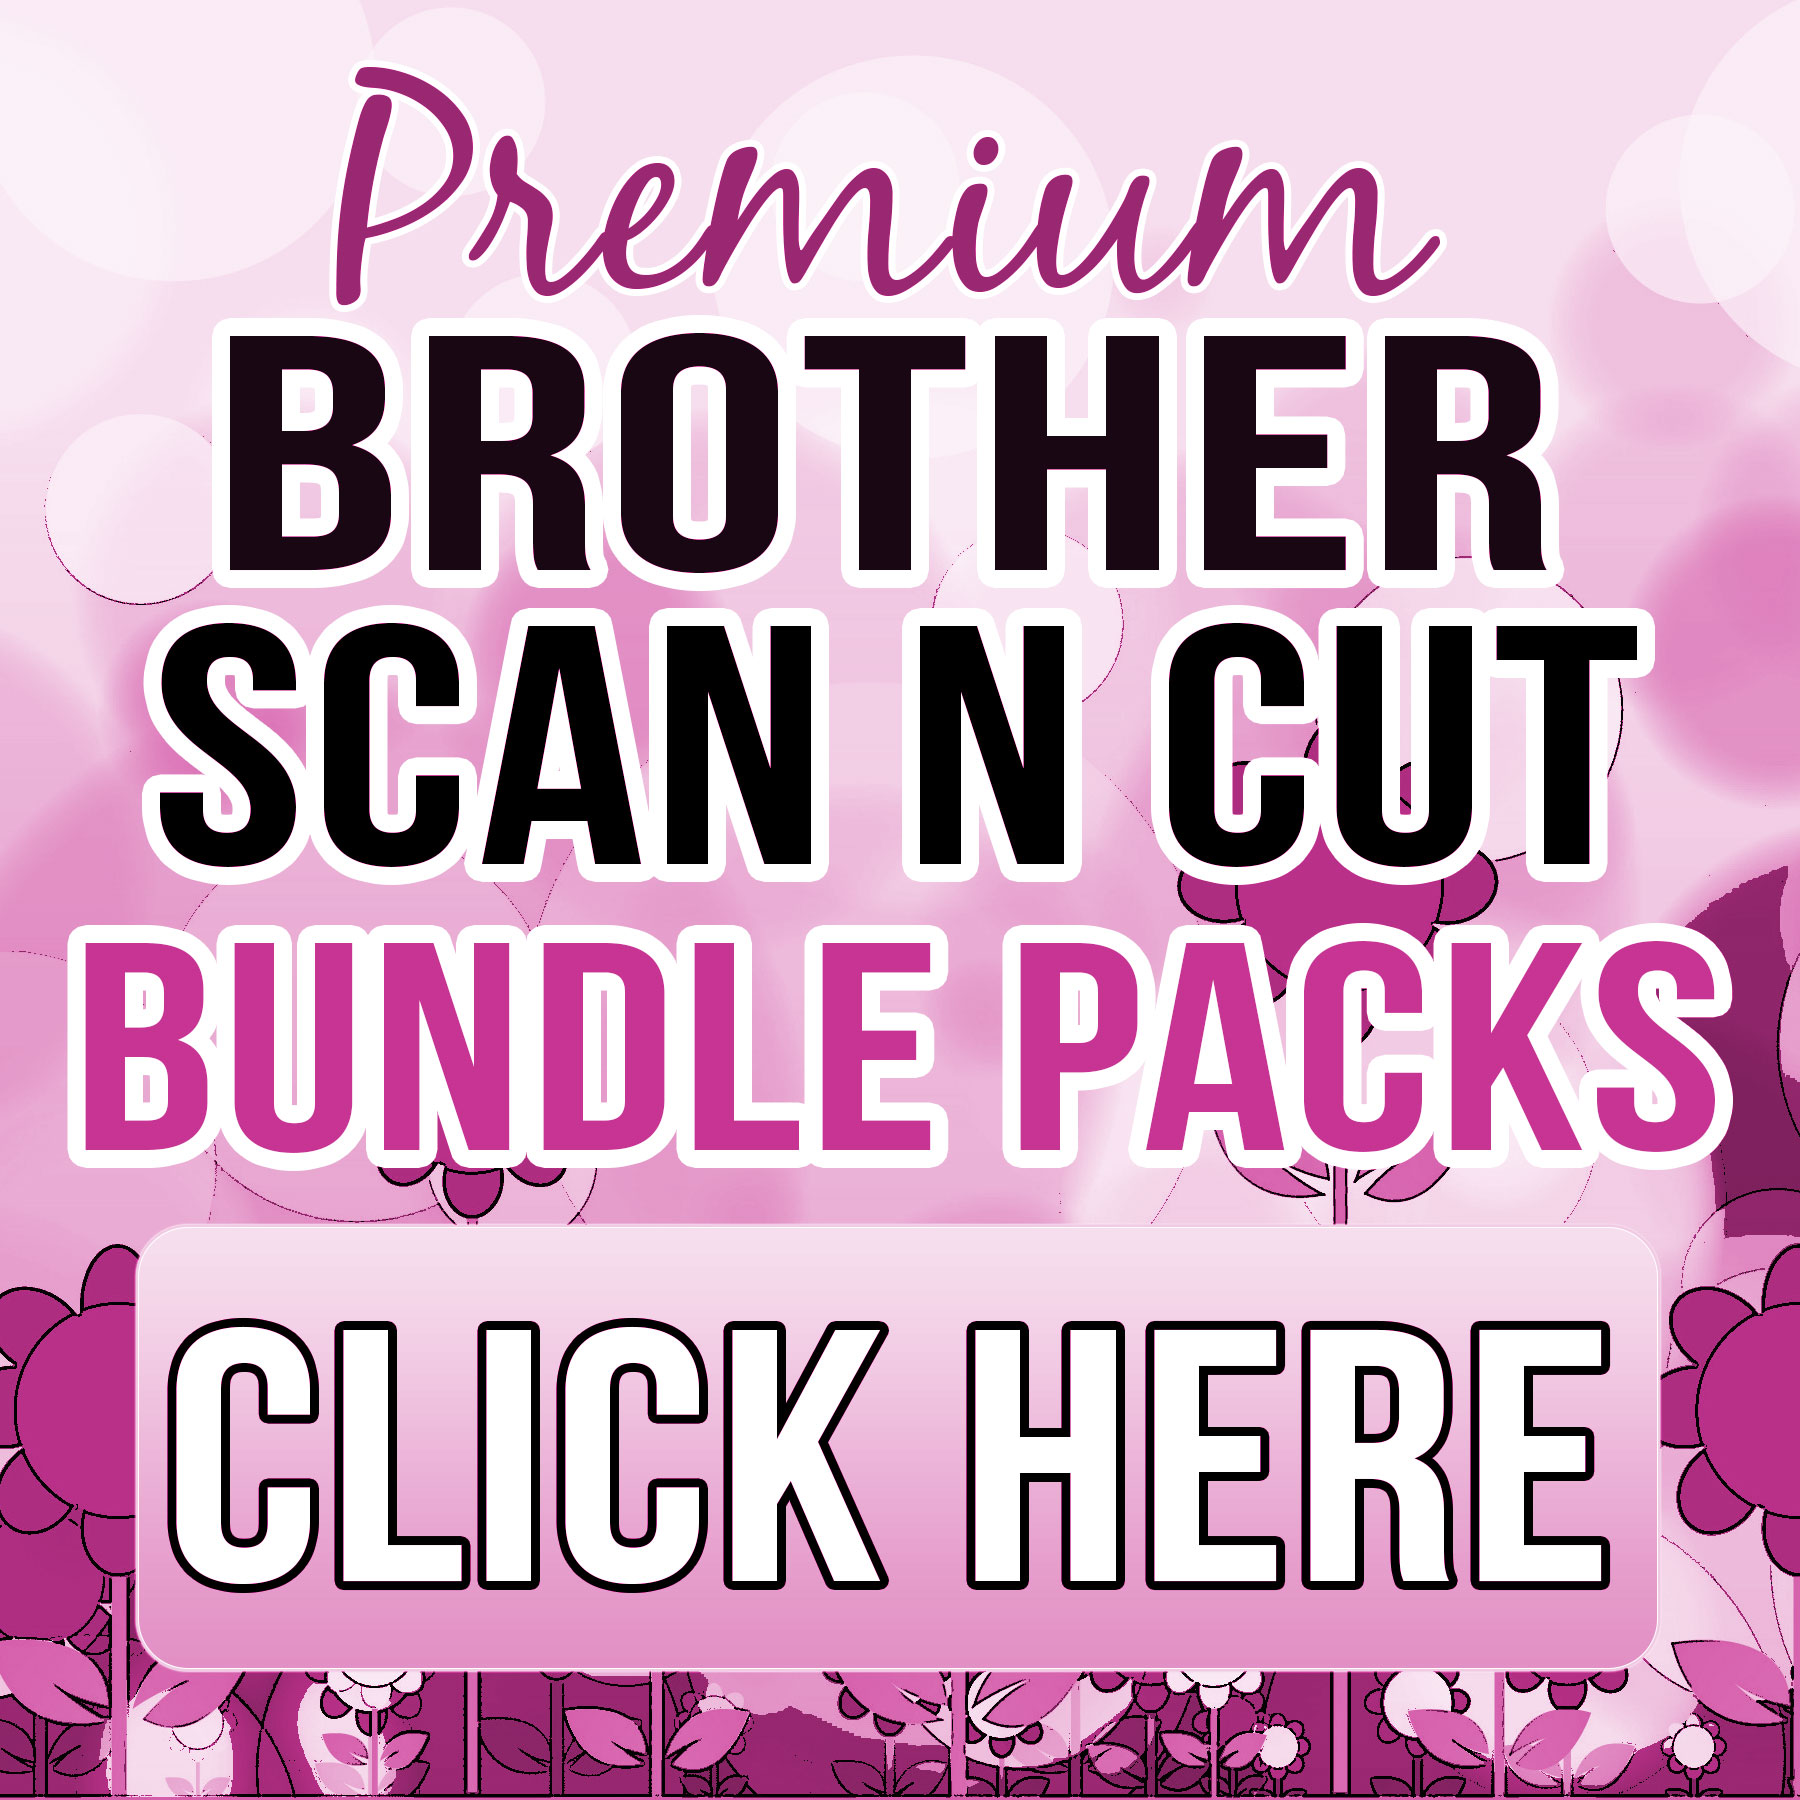 NEW: Scan n Cut Bundle Packs